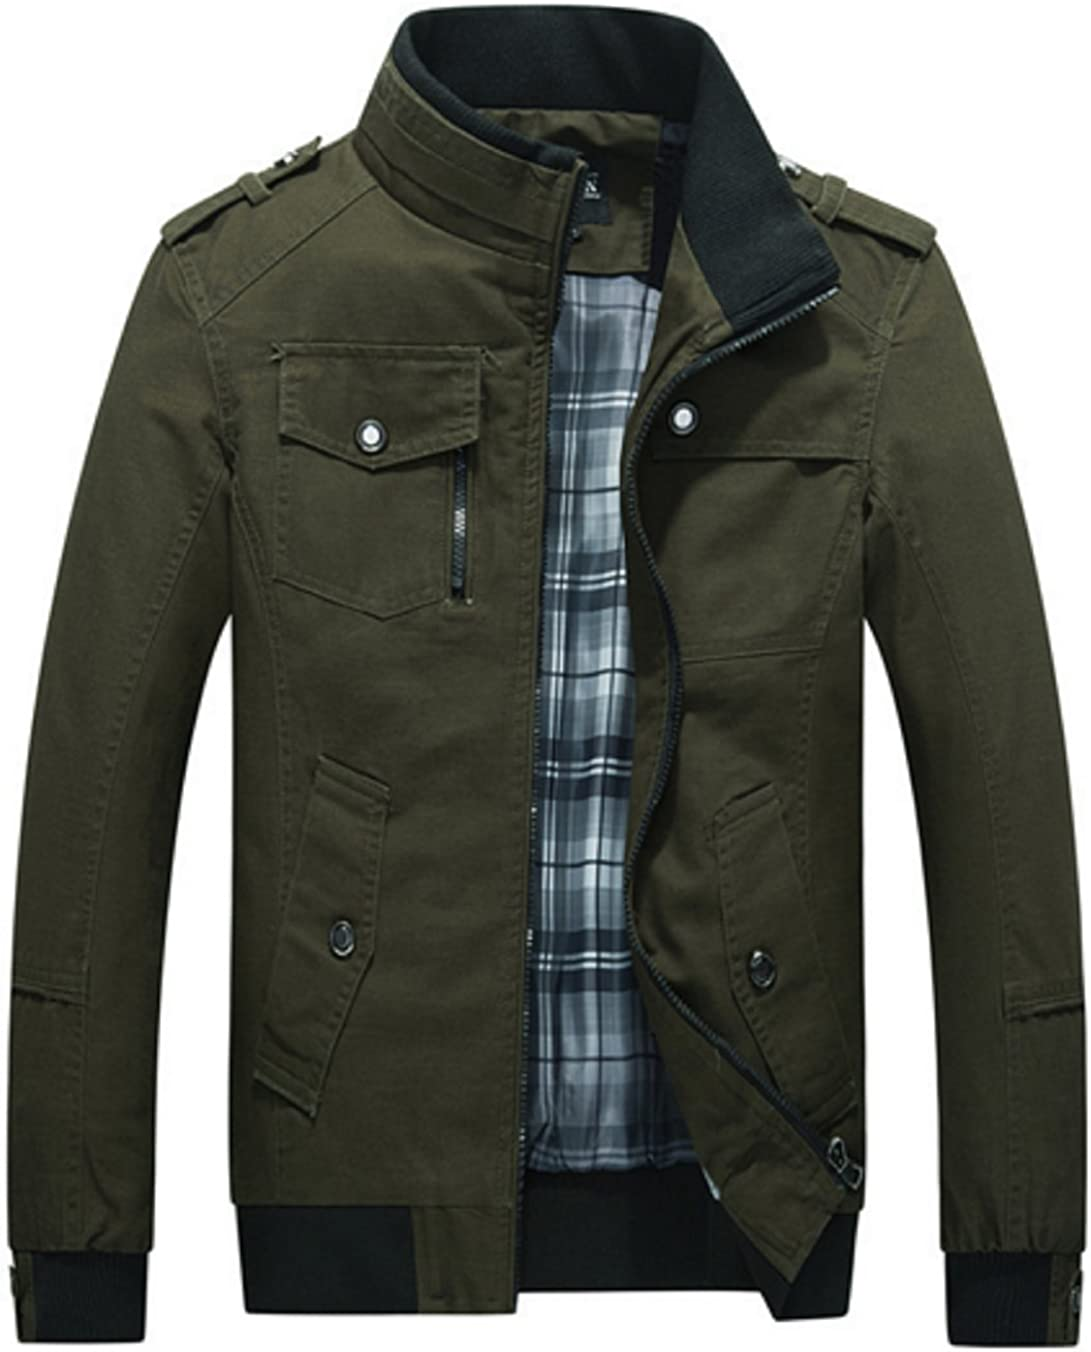 Olrek Mens Autumn and Fall Stand Colllar Outerwear Jacket Coat